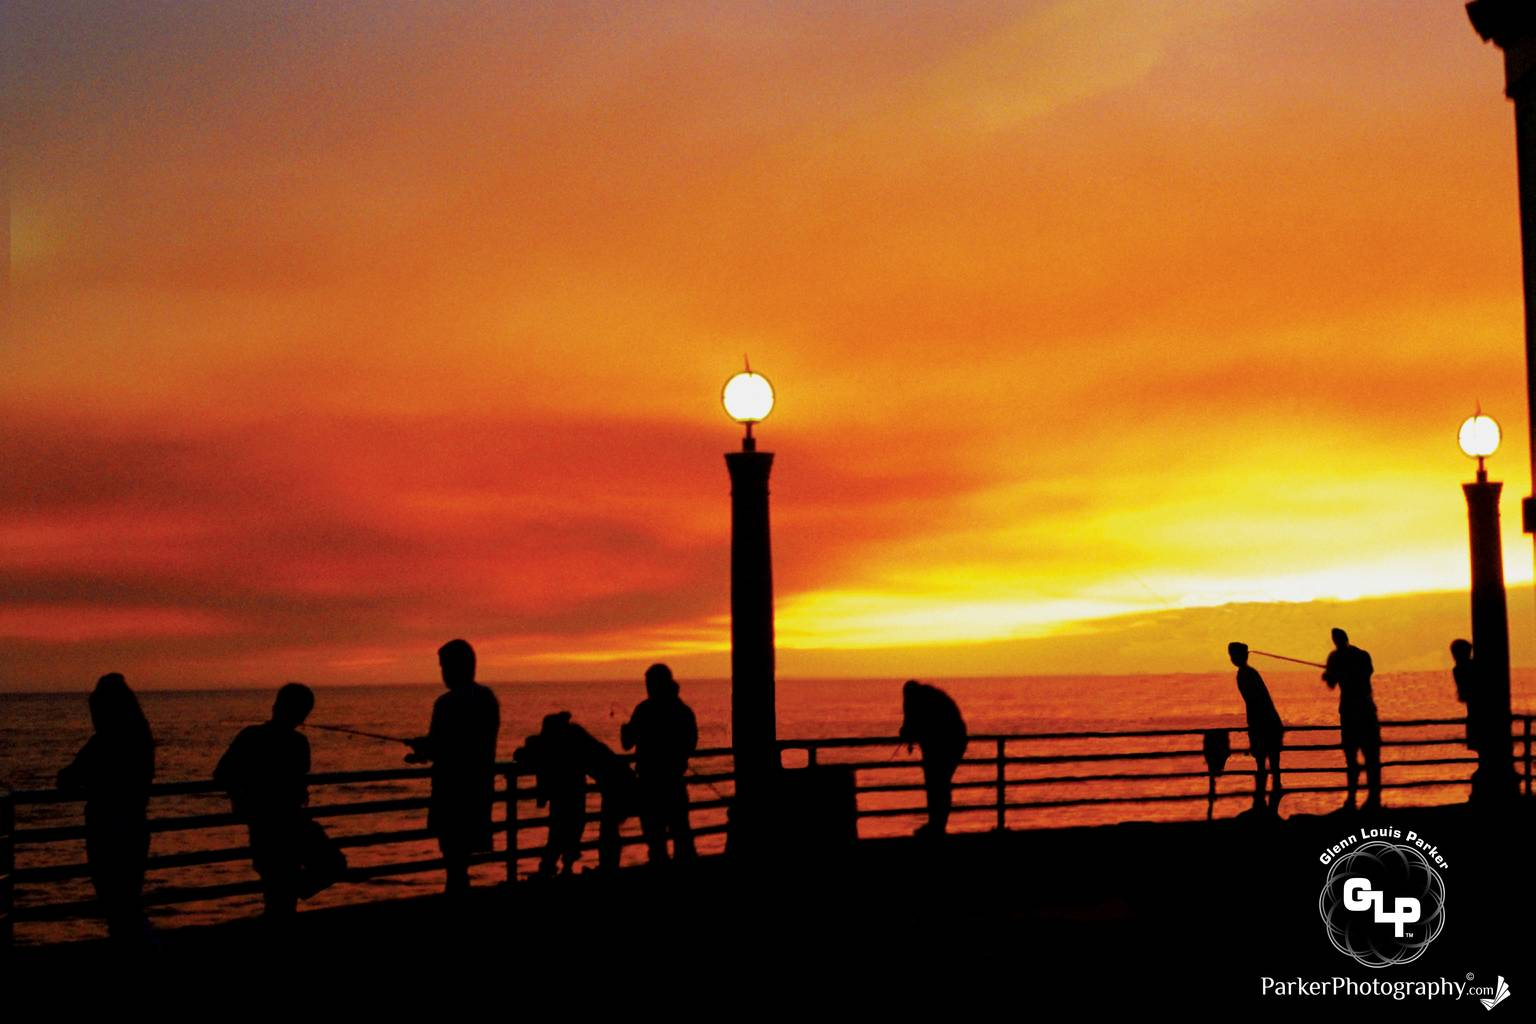 ParkerPhotography-Founded1992-Manhattan-Beach-Pier-California-During-the-1992-Malibu-Topanga-Canyon-Fires